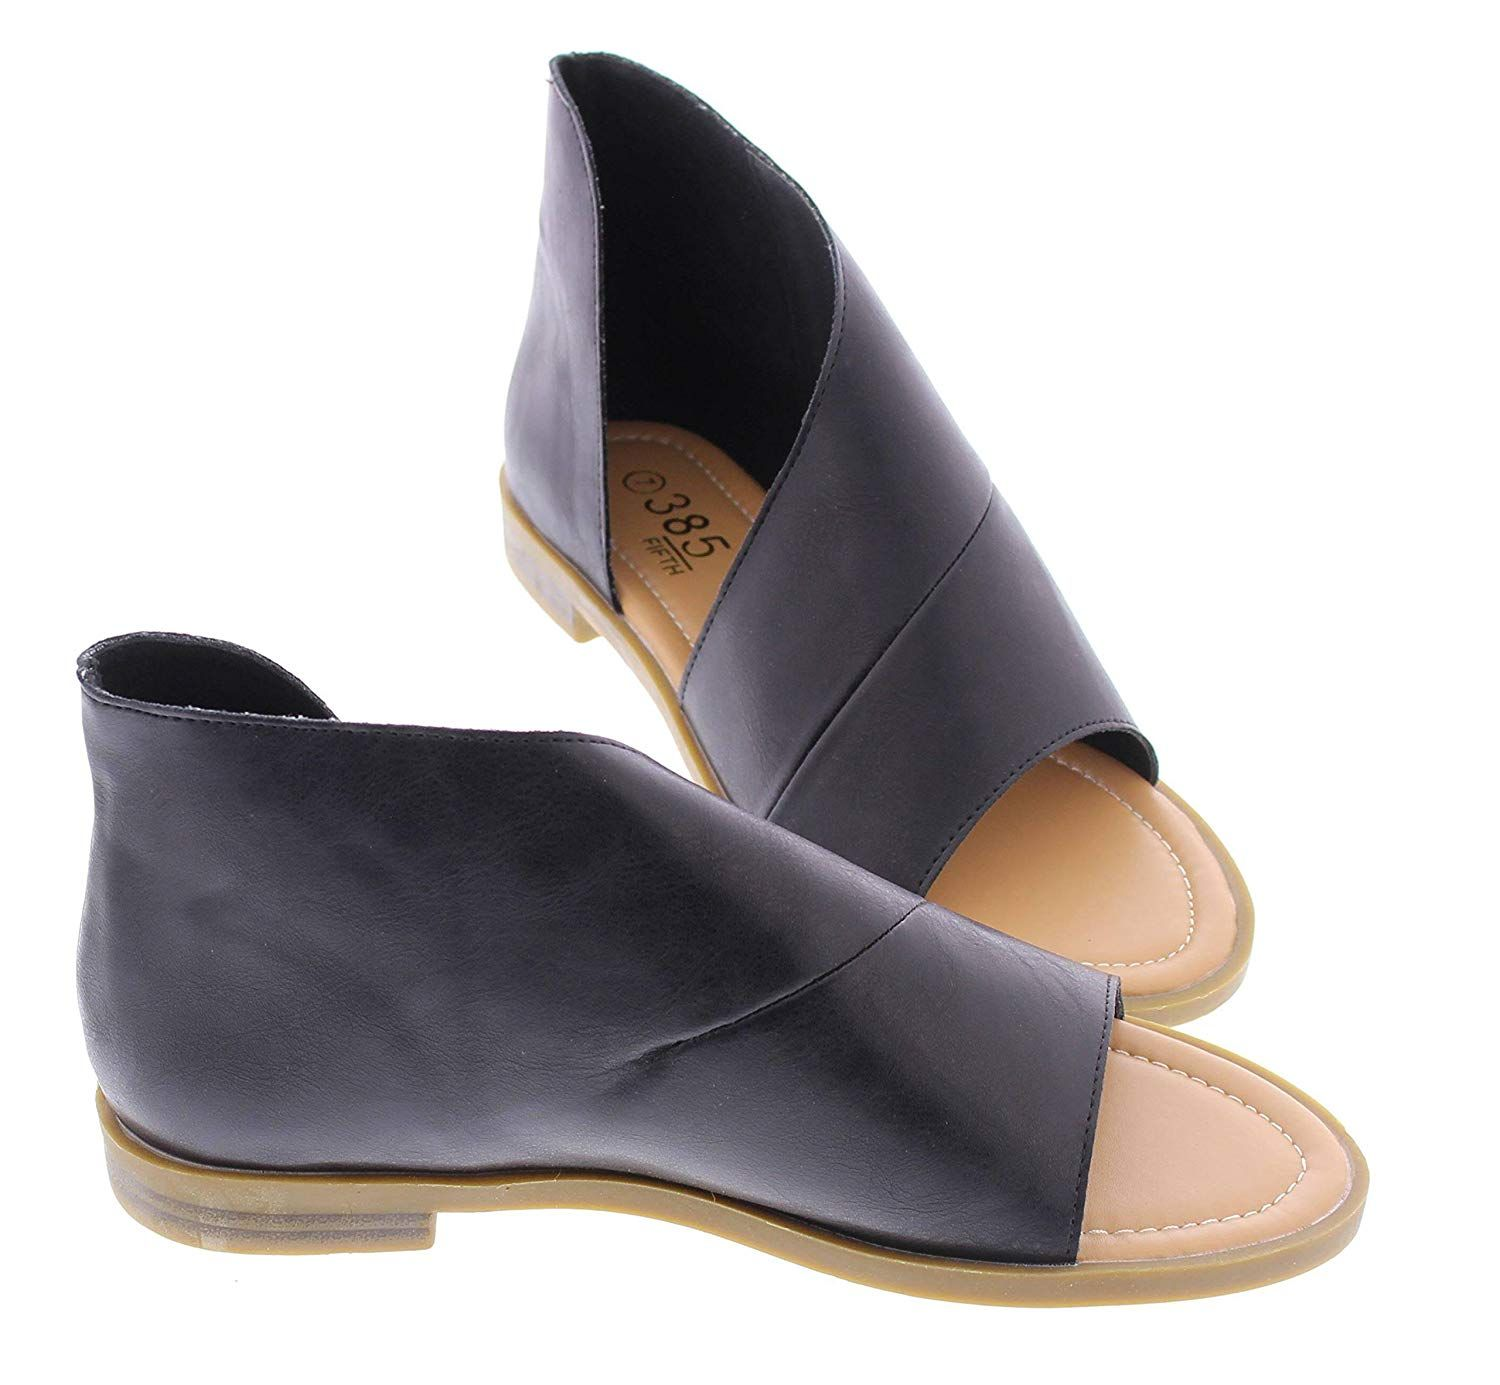 Pin on D'Orsay Shoes for Women Popular & Cute Women's D'Orsay